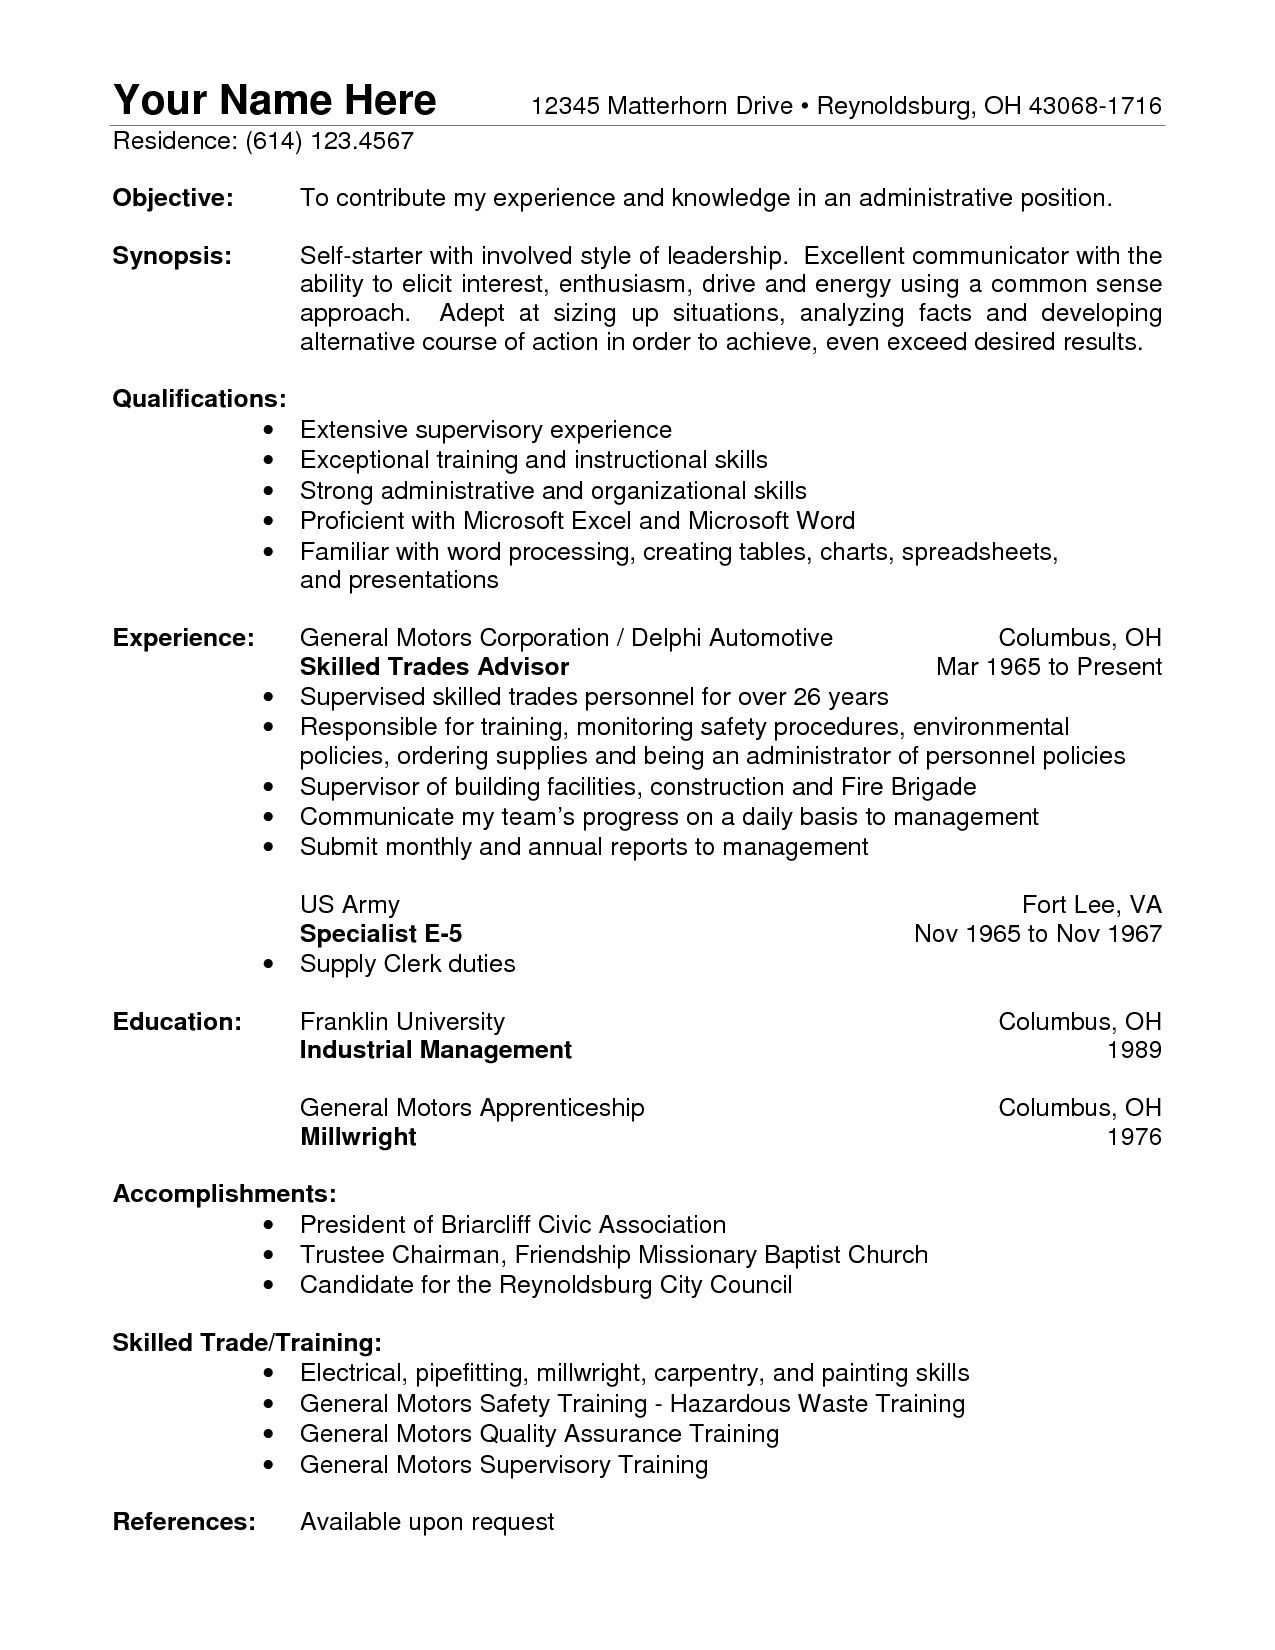 Warehouse Worker Resume Sample Resume Genius College Graduate Sample Resume  Examples Of A Good Essay Introduction Dental Hygiene Cover Letter Samples  Lawyer ...  Warehouse Worker Sample Resume